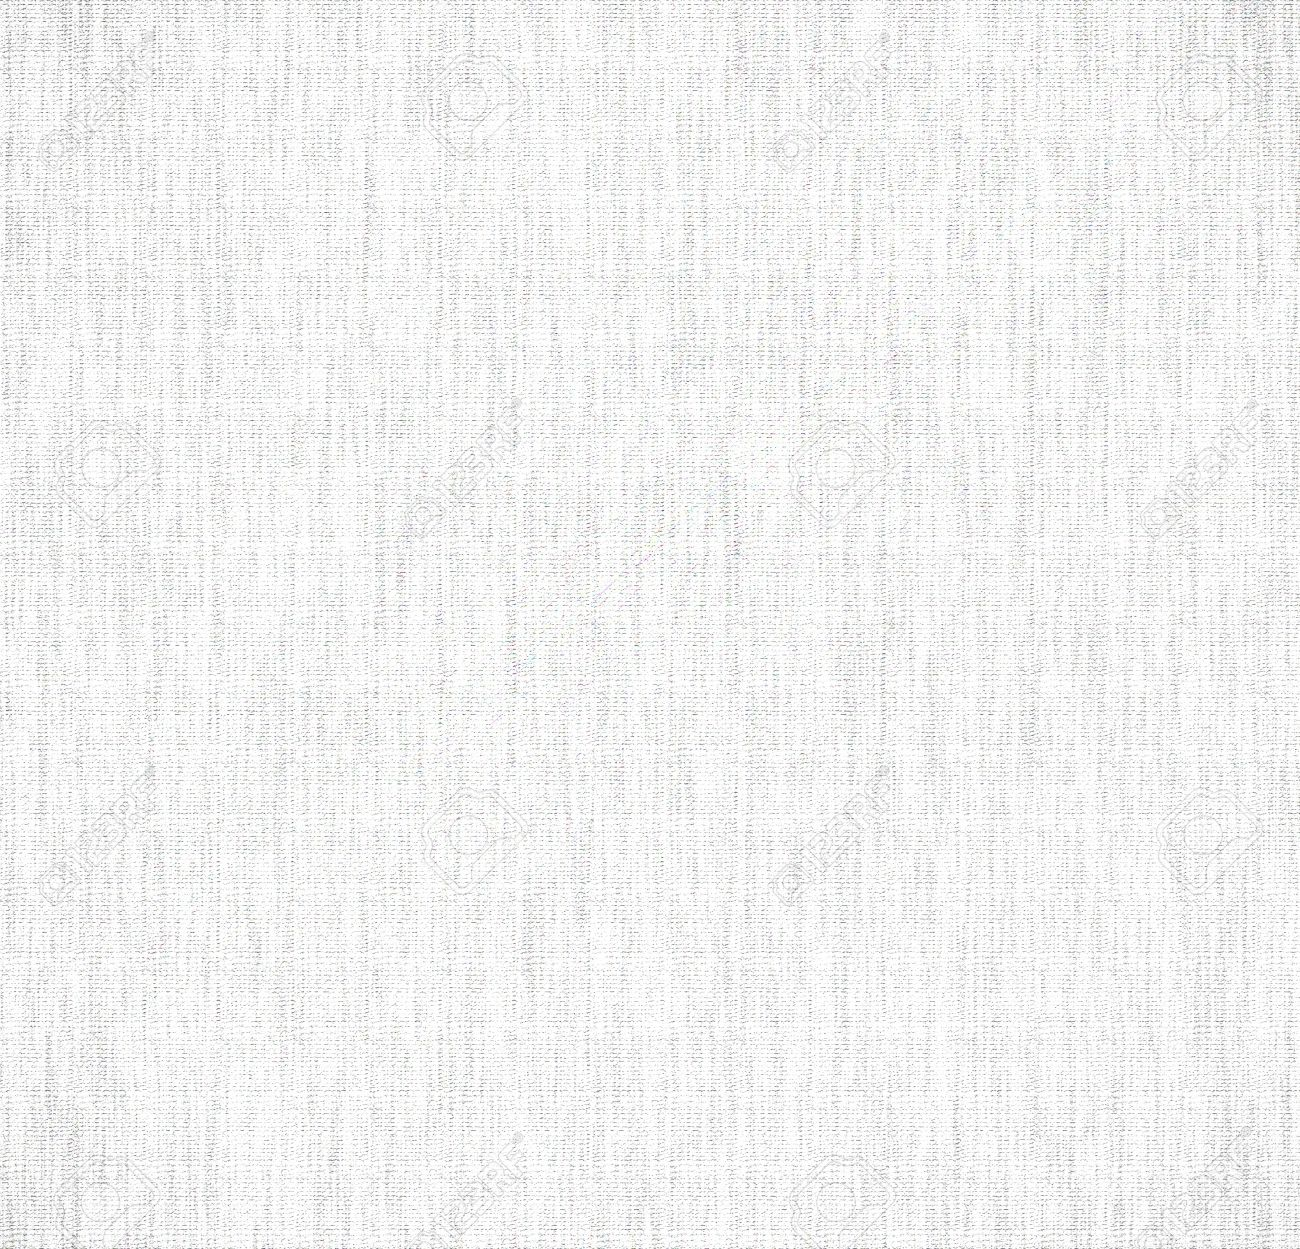 Grey Fabric Sheet Of Paper As A Texture Stock Photo Picture And